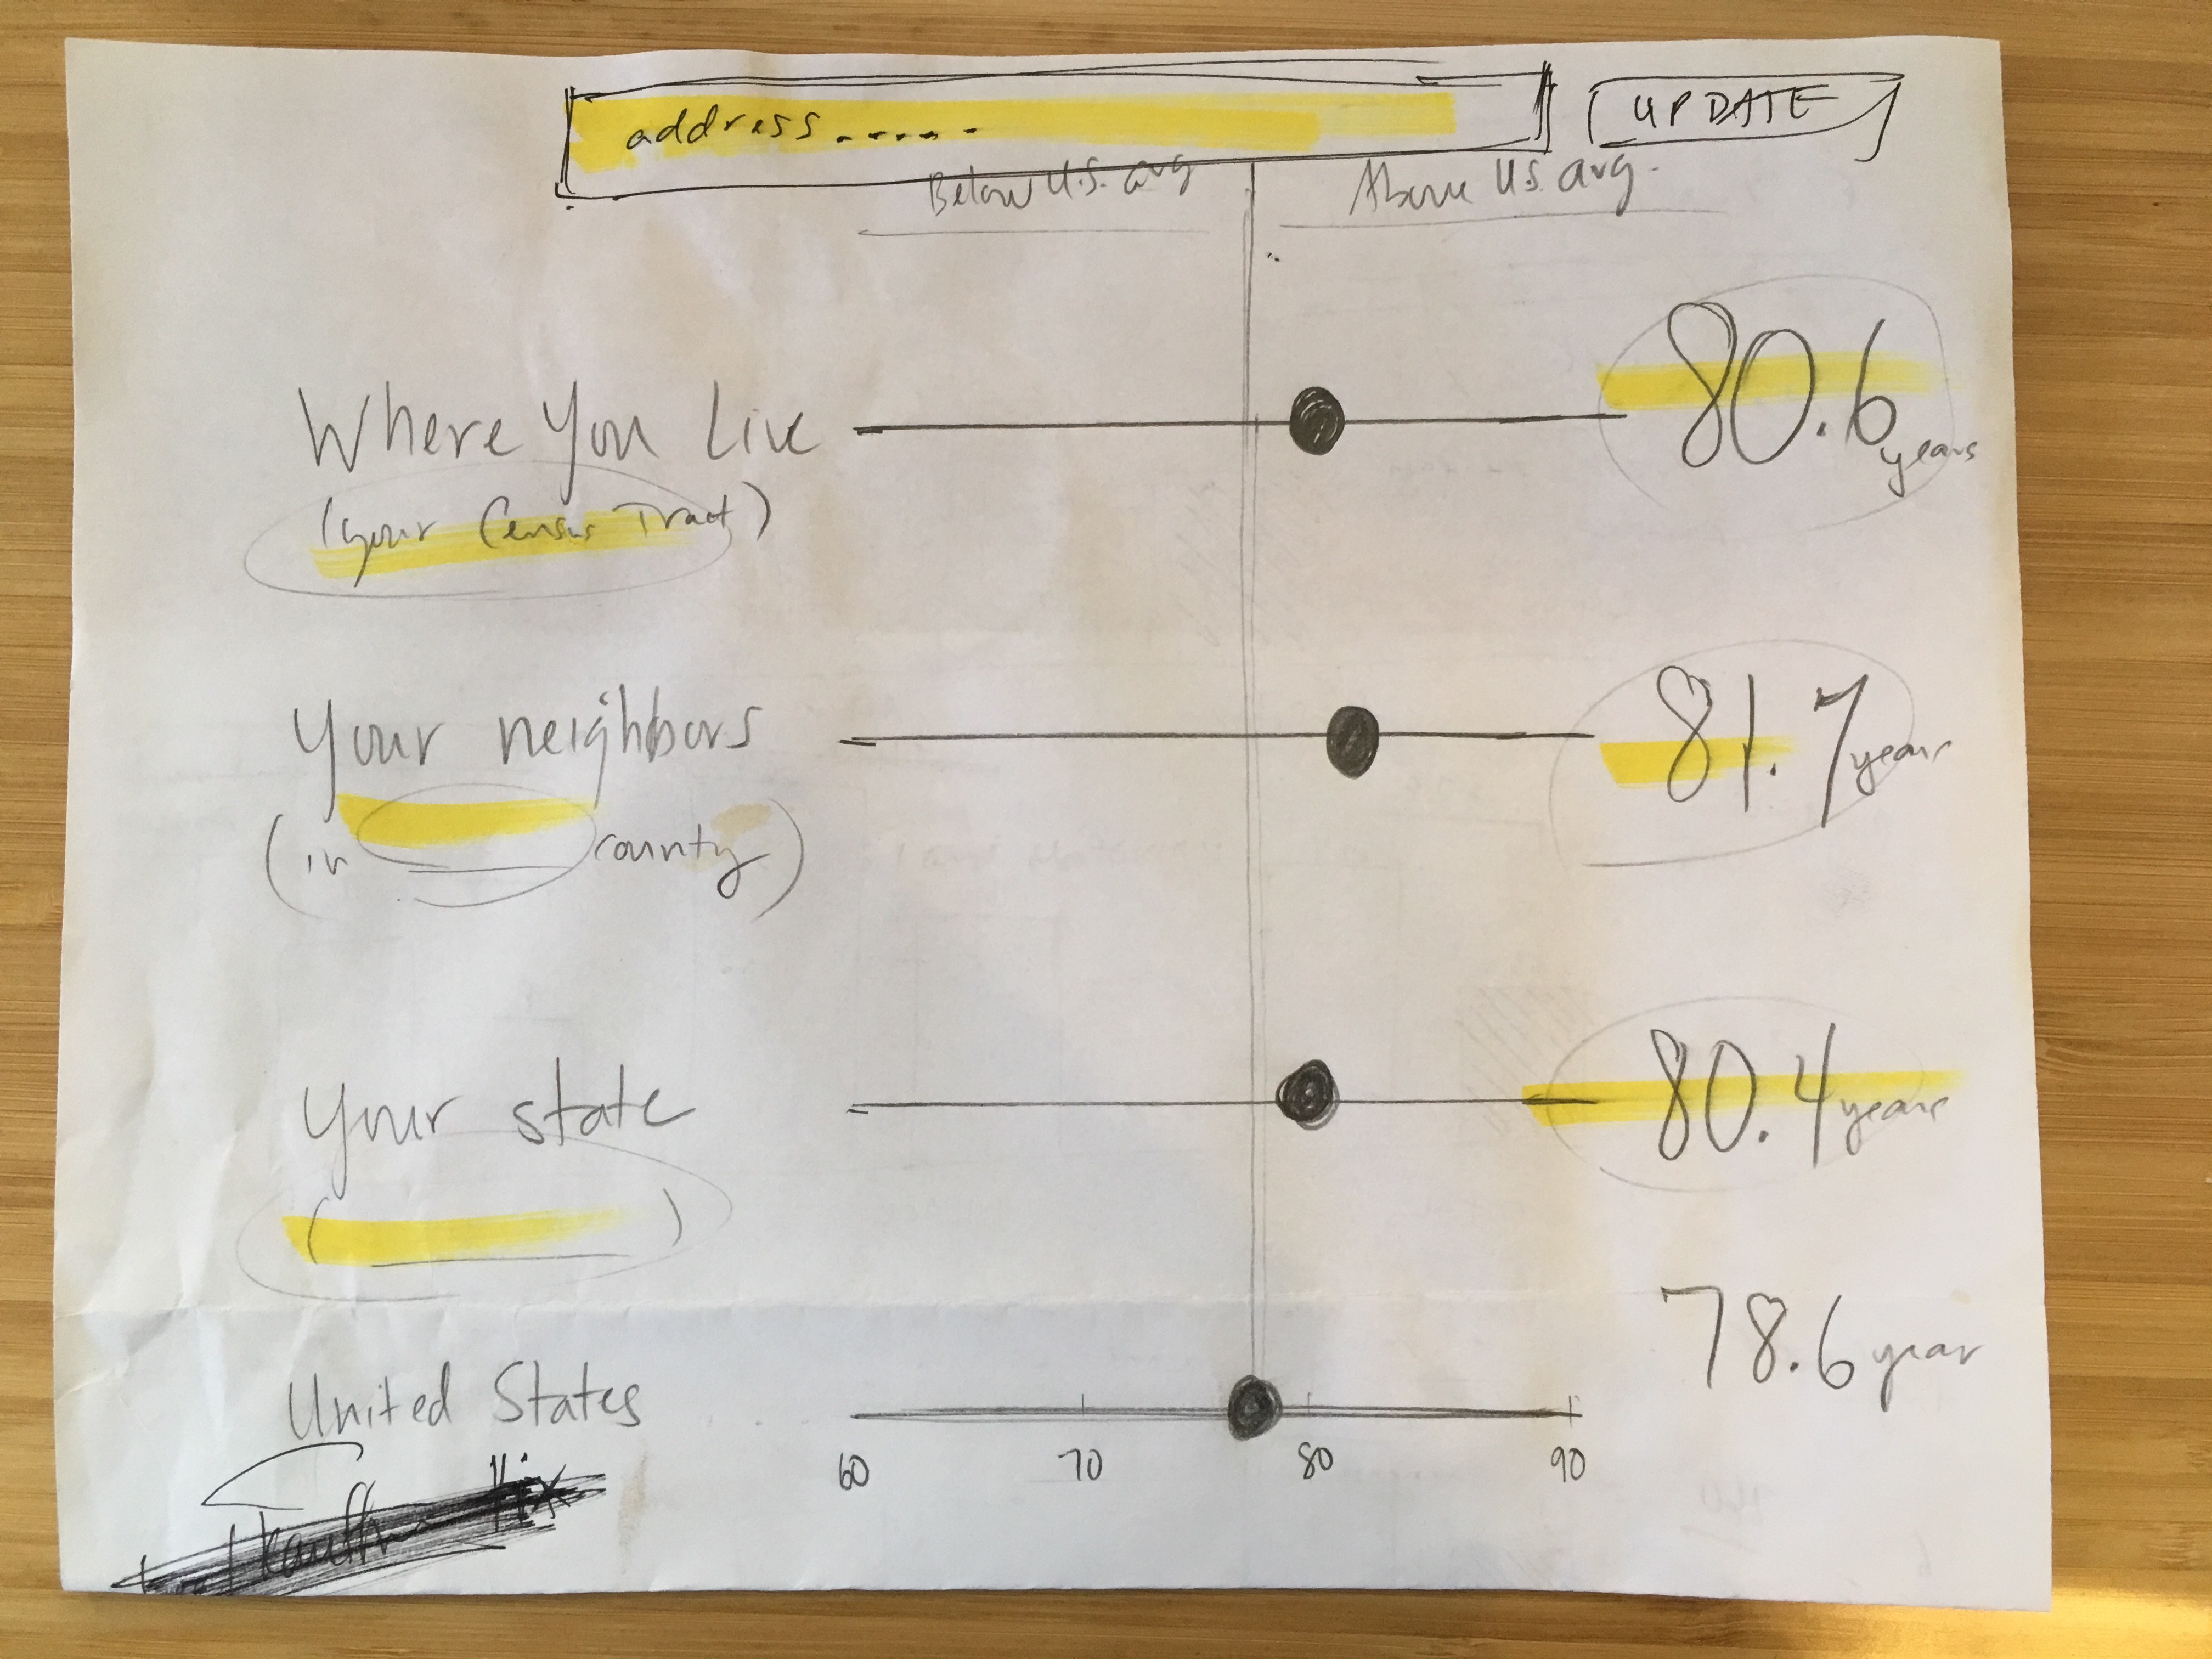 A pencil and highlighter sketch on a sheet of paper of a set of horizontal scales with large black dots marking the life expectancy of particular groups - Where you live, your neighbors, your state, and the UNited States with an address search bar at the top